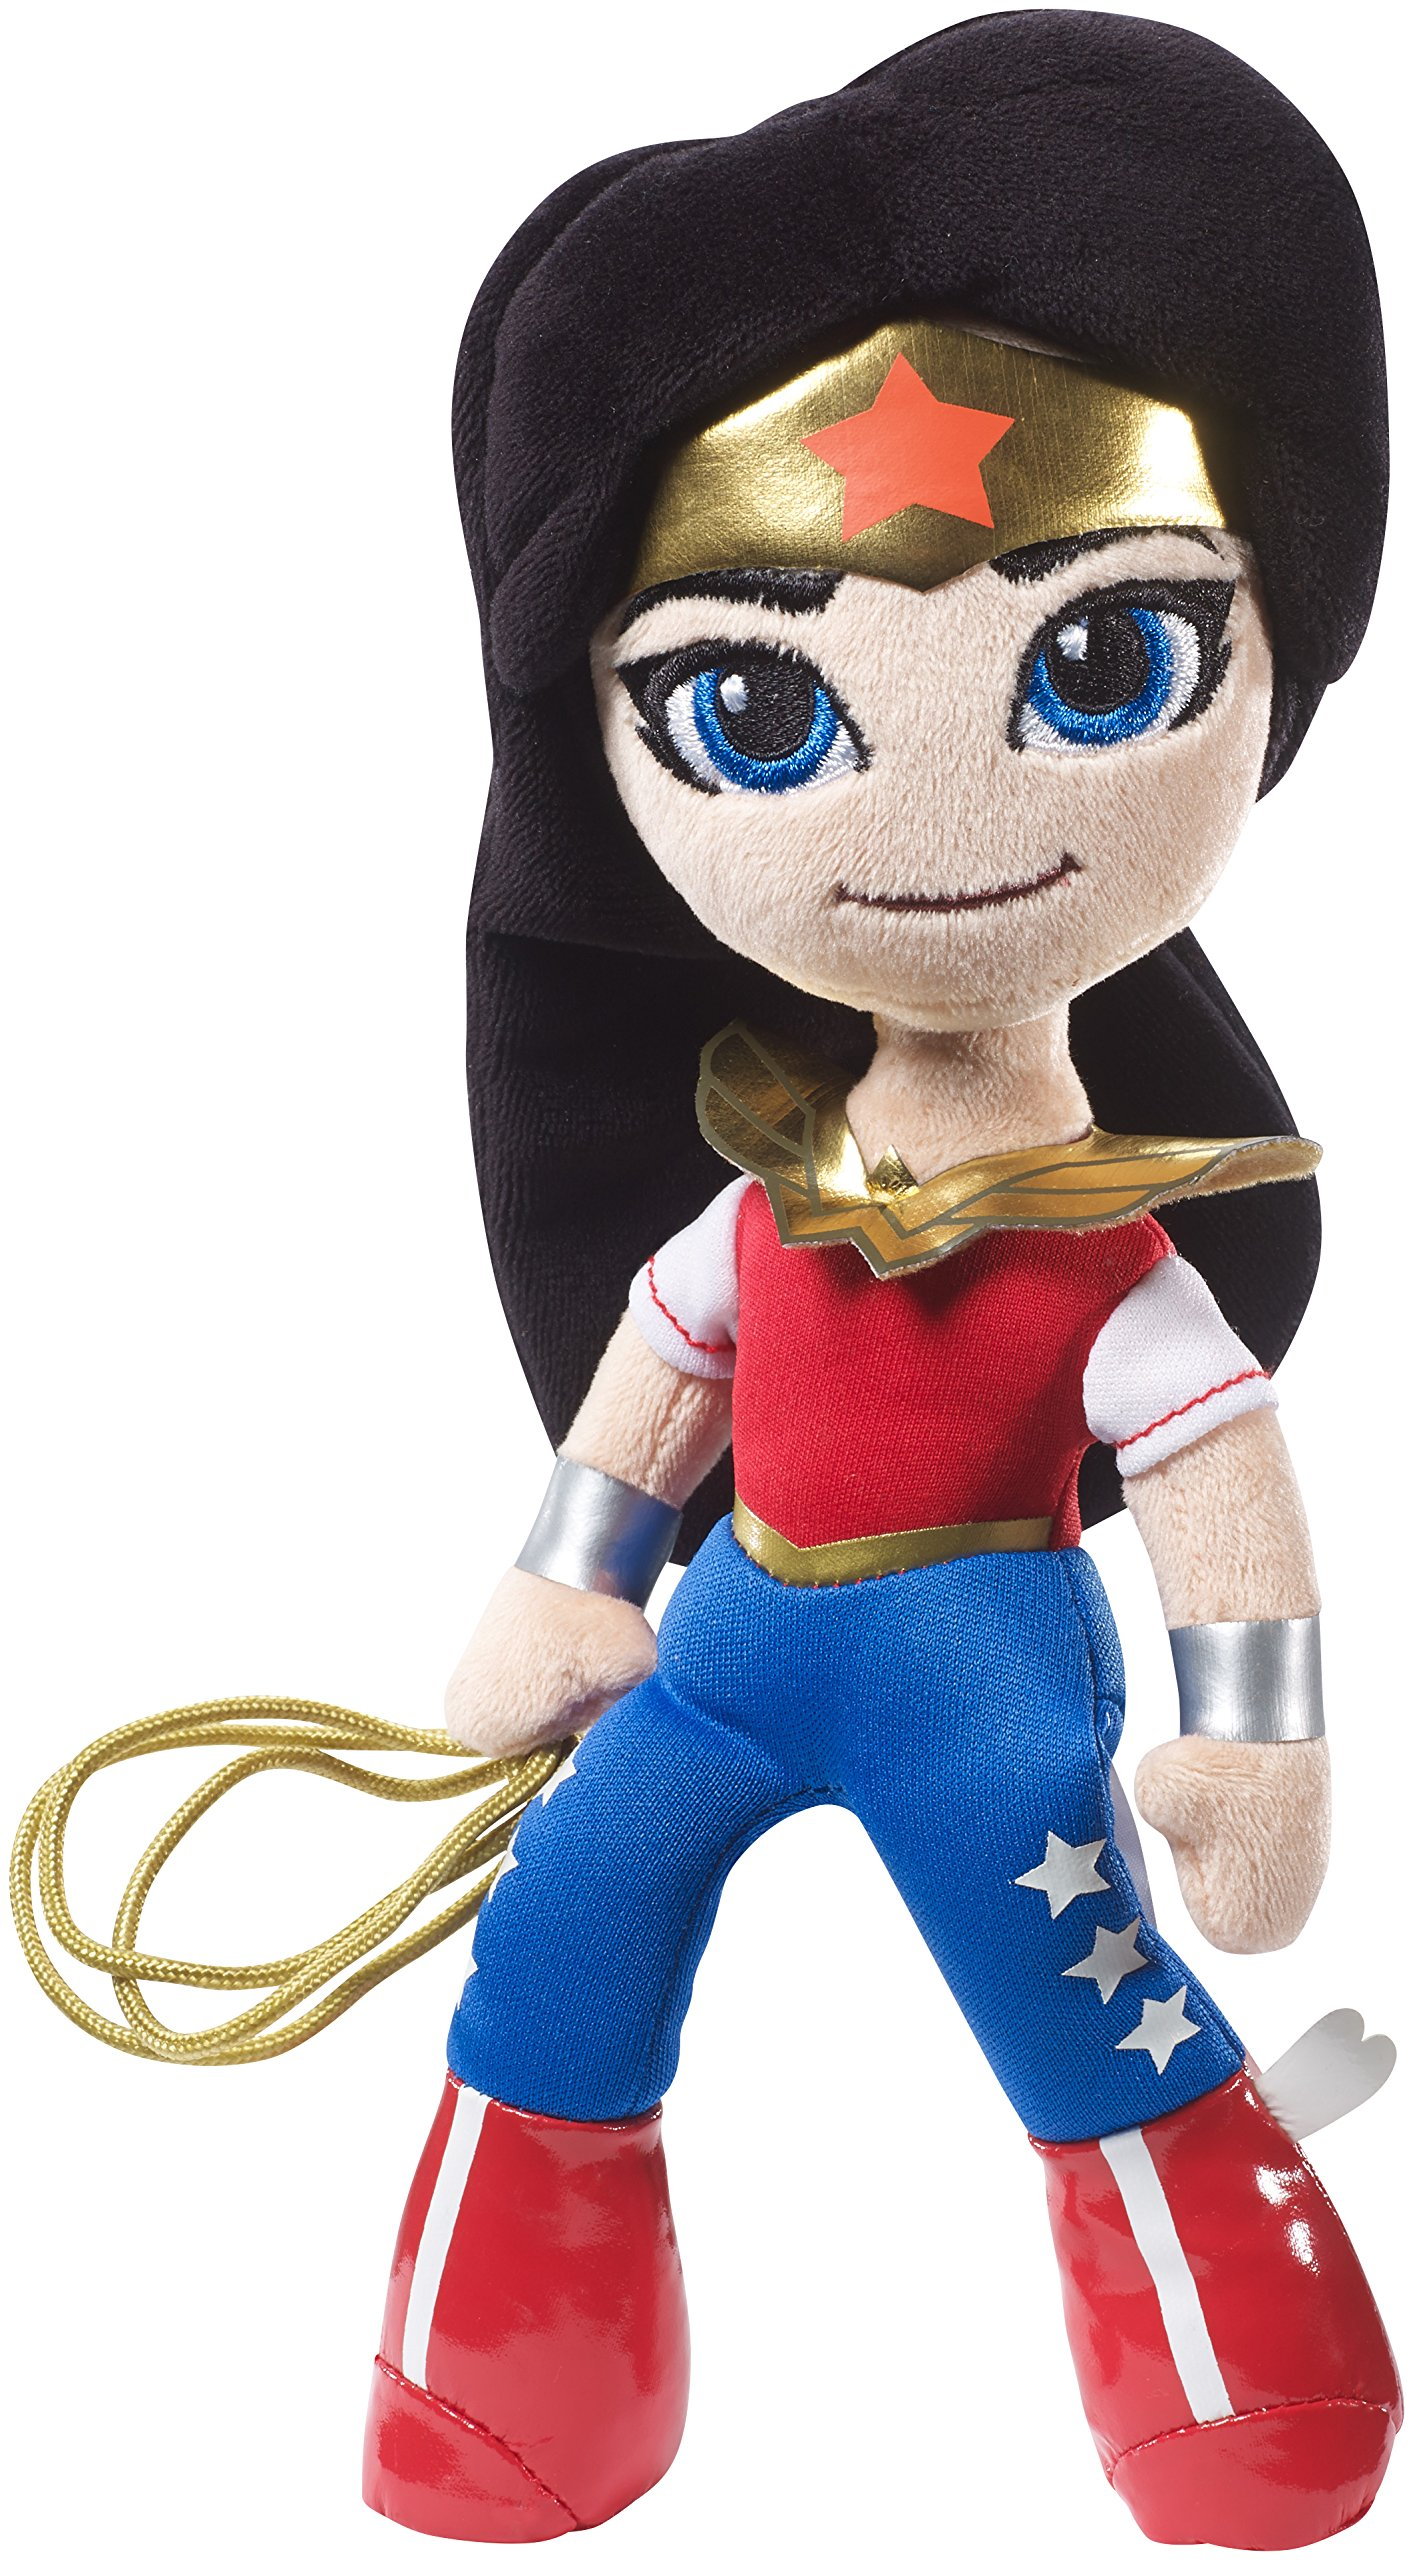 unique ts for little girls cool toys d c super hero girls dolls